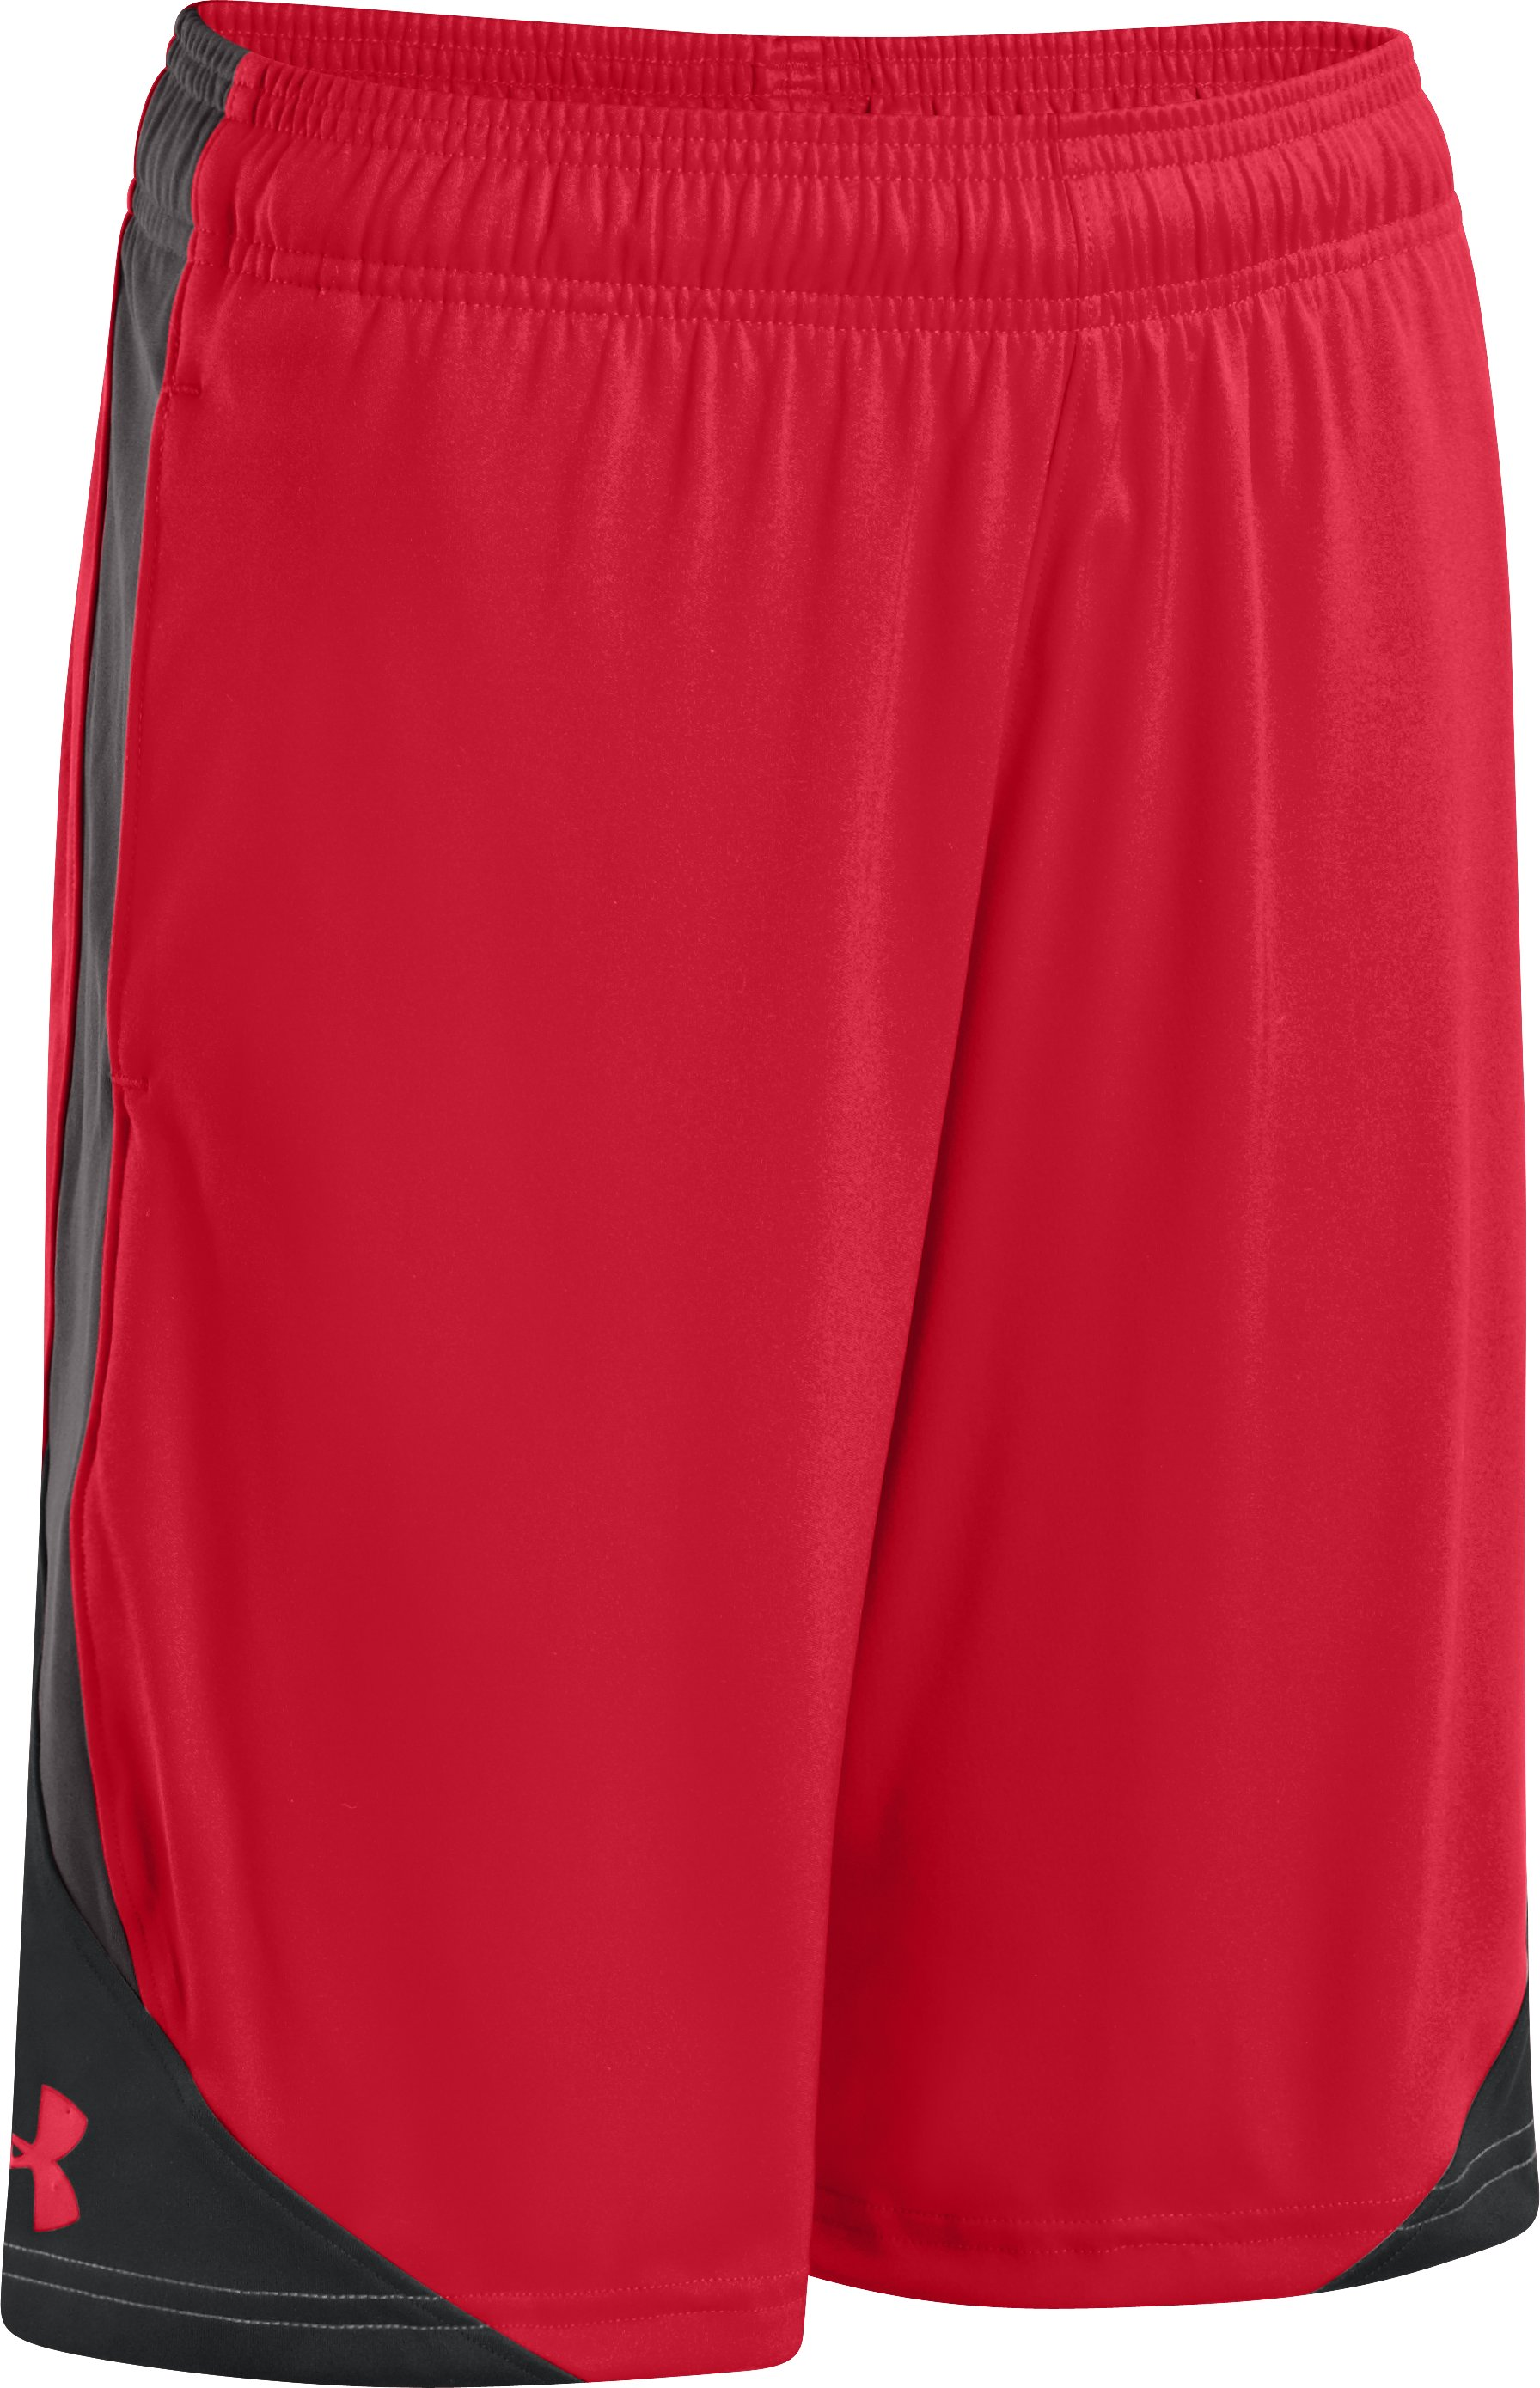 Boys' UA Extreme Shorts, Red